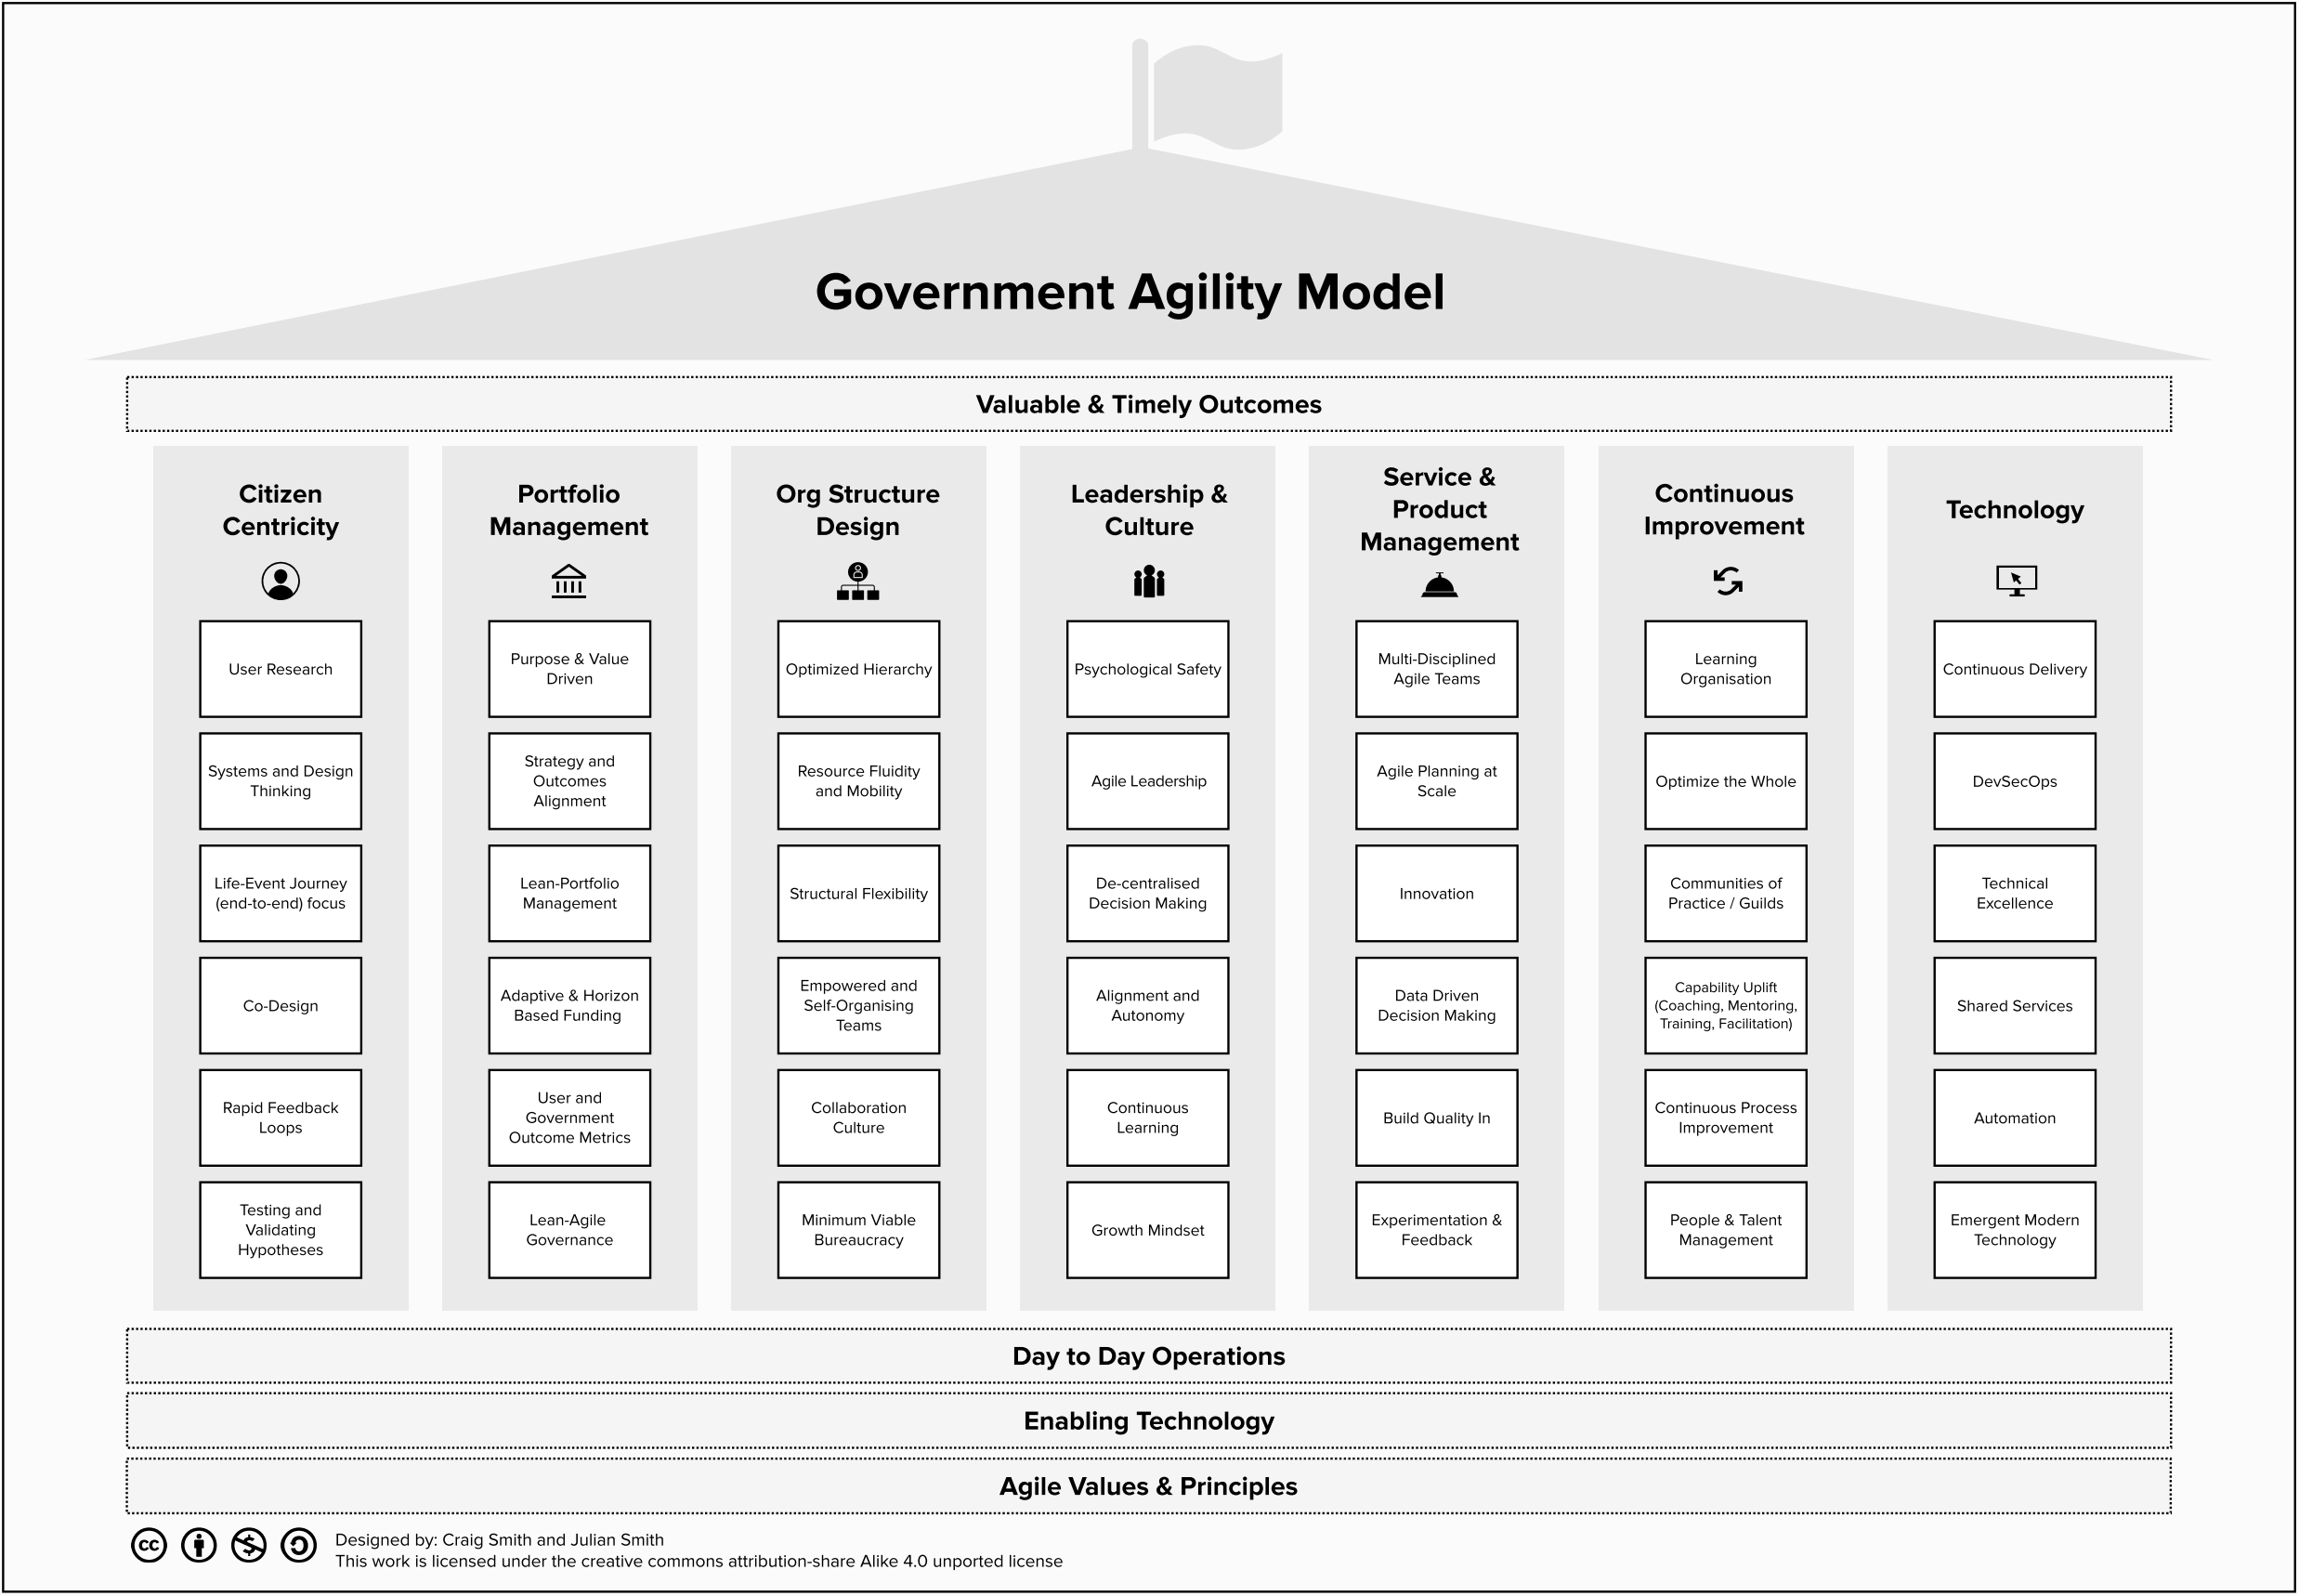 Government Agility Model